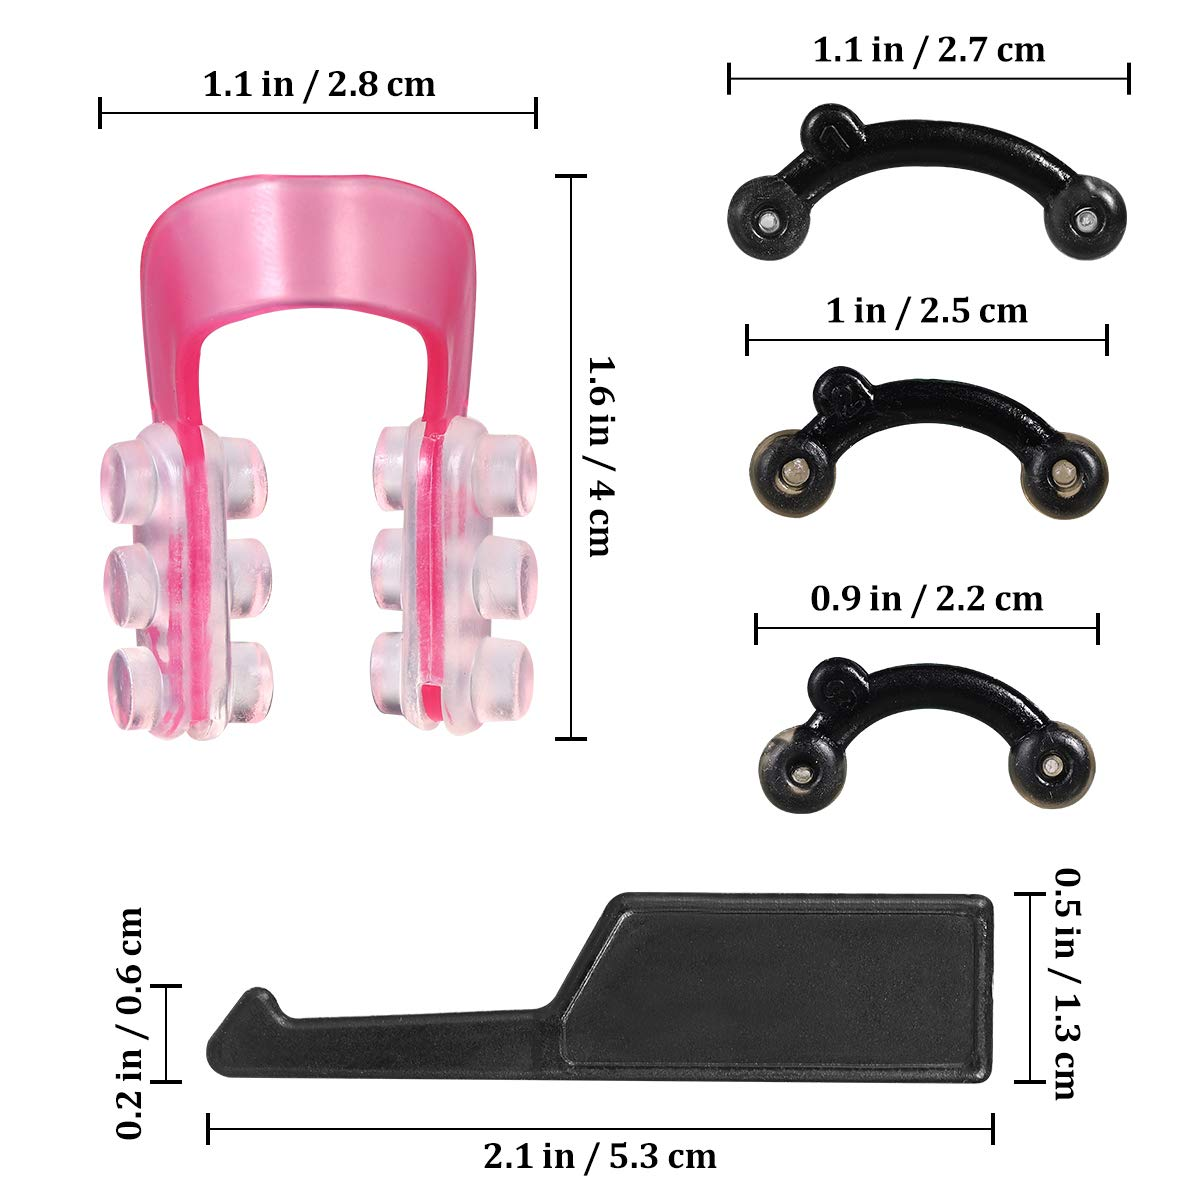 Nose Up Lifting Shaping Clip Clipper Shaper Beauty Tool Set Plastic (Pink)